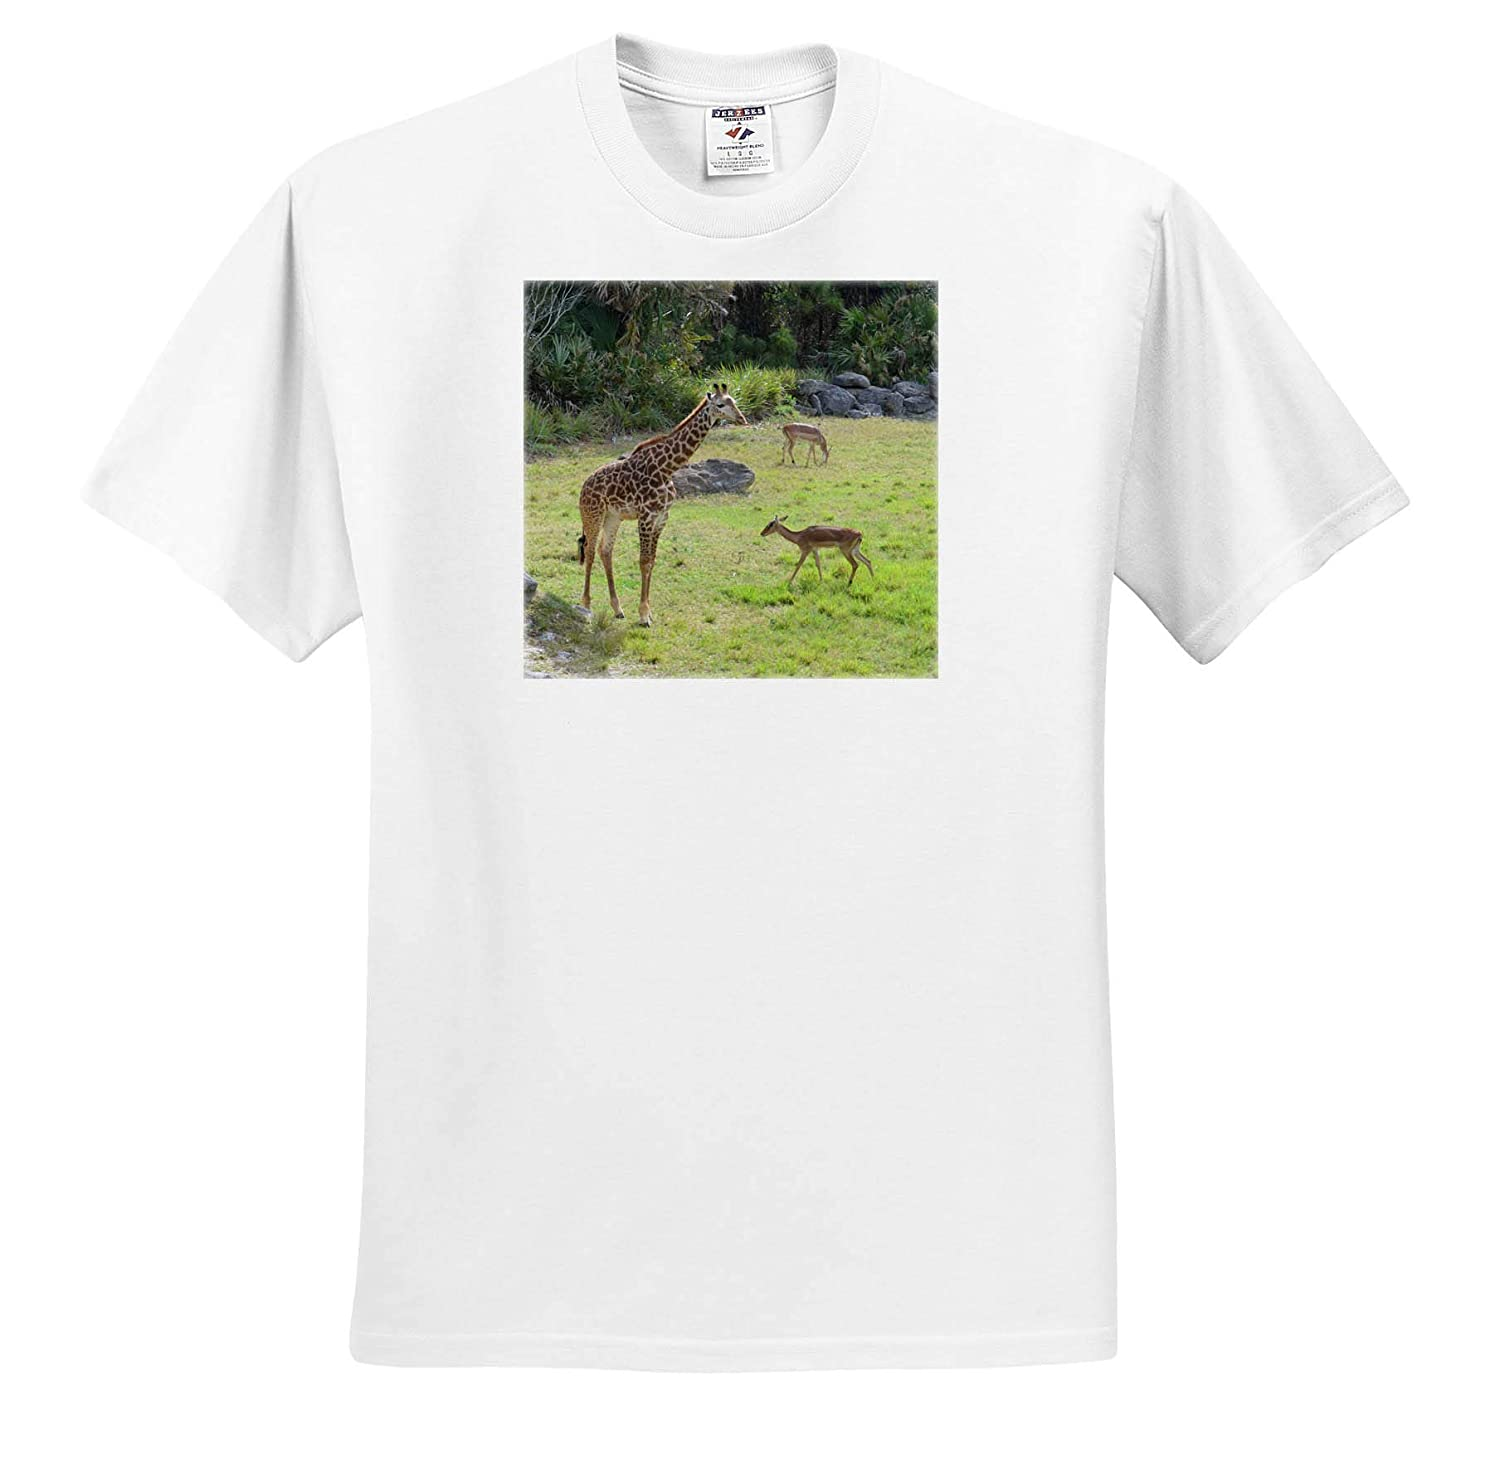 3dRose Susans Zoo Crew Animal T-Shirts Giraffe and Antelope on Grass Animal